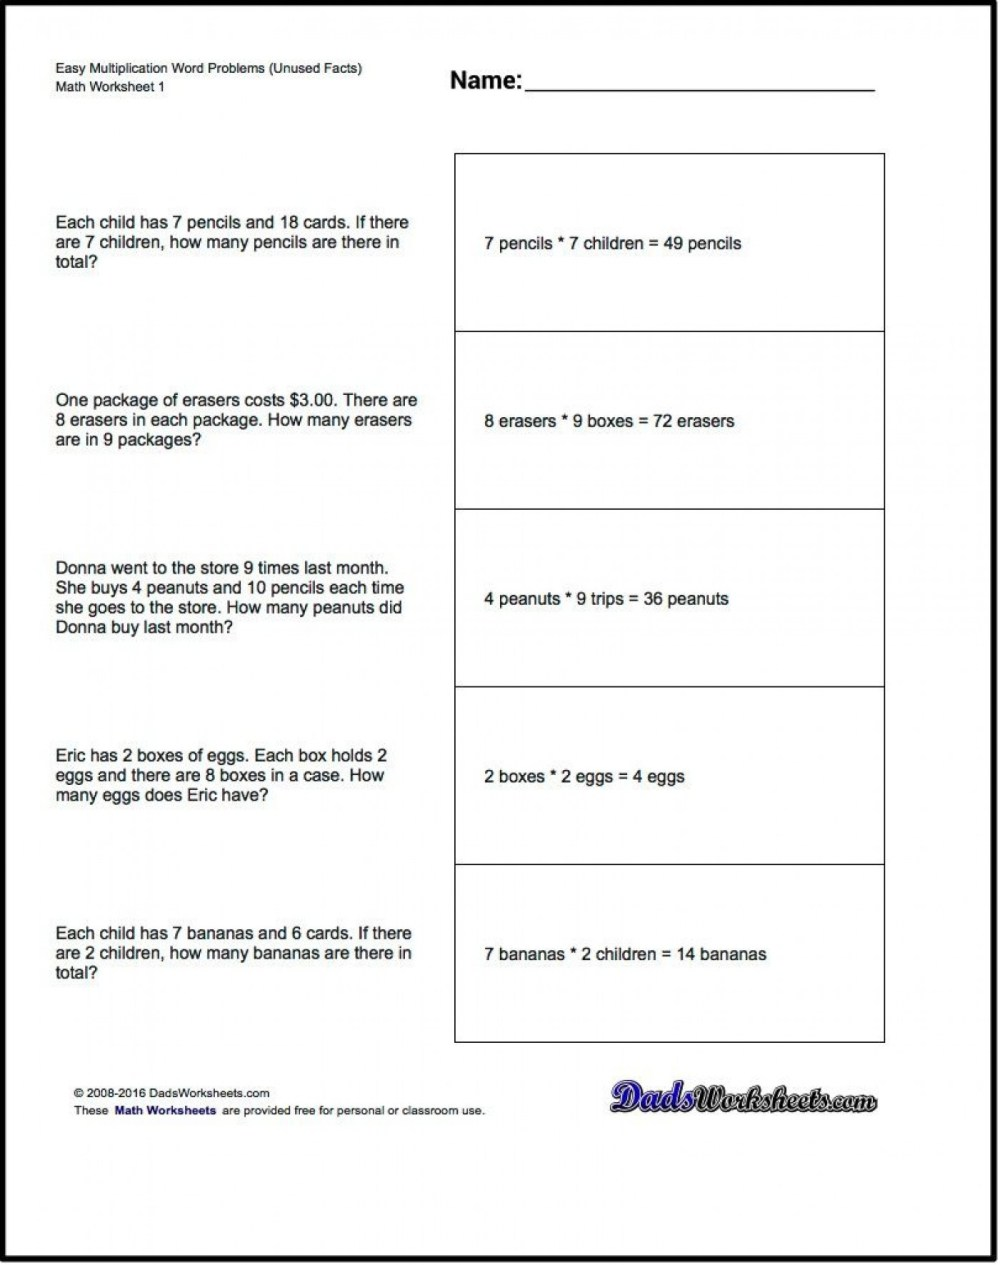 medium resolution of 4 Free Math Worksheets Second Grade 2 Addition Add In Columns Missing  Addend - apocalomegaproductions.com